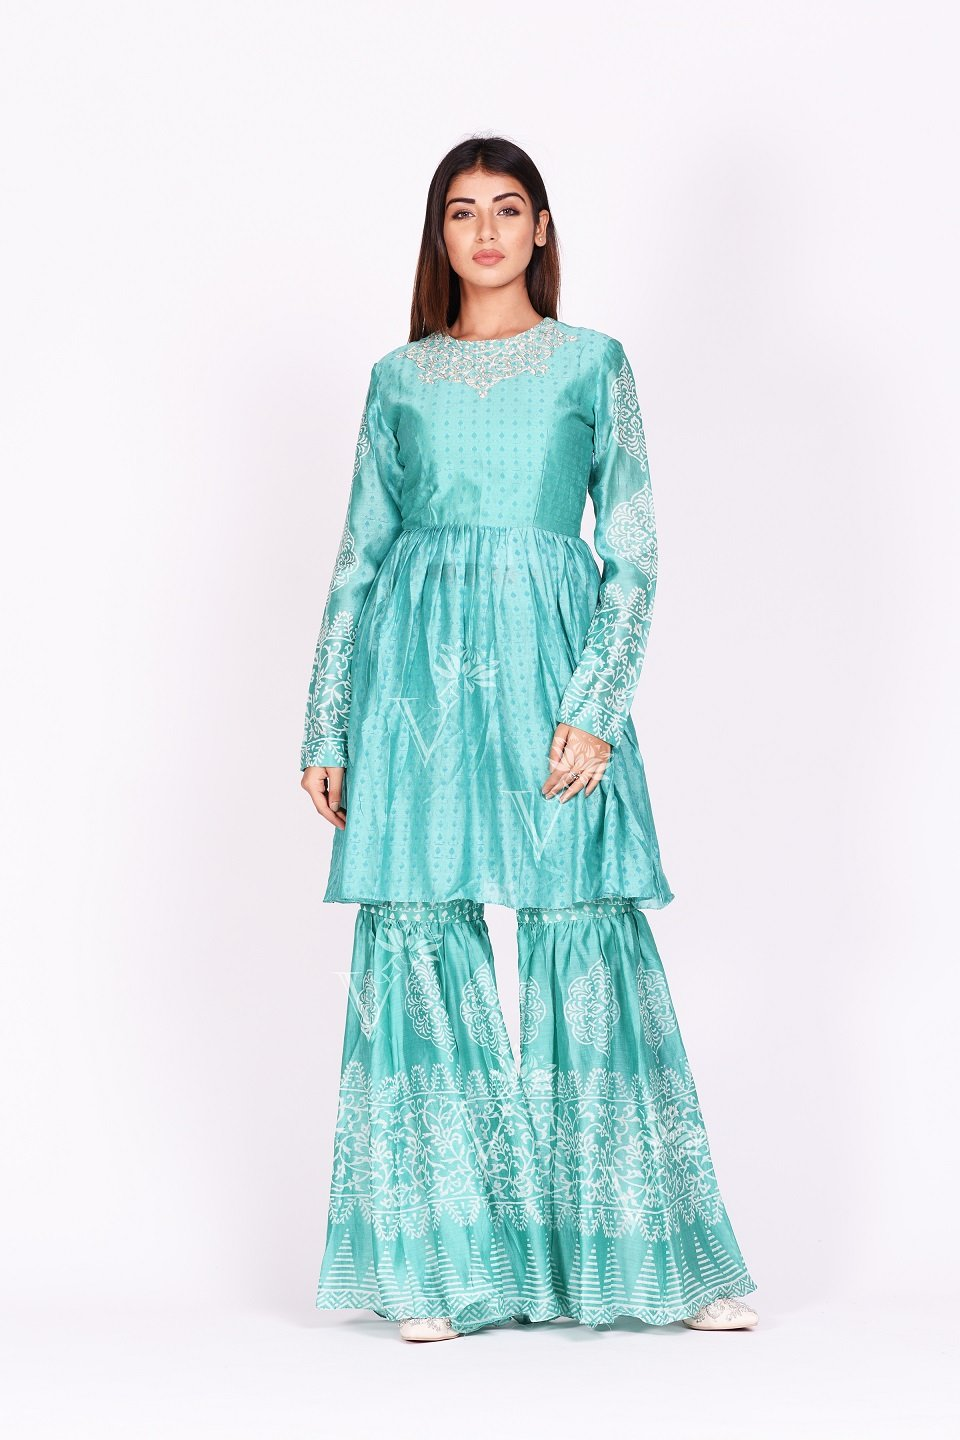 Buy stunning mint green printed silk sharara set online in USA. Make a stunning fashion statement at weddings and special occasions with an exquisite collection of designer Anarkali suits, designer lehengas, Indian designer dresses from Pure Elegance Indian fashion store in USA. -front